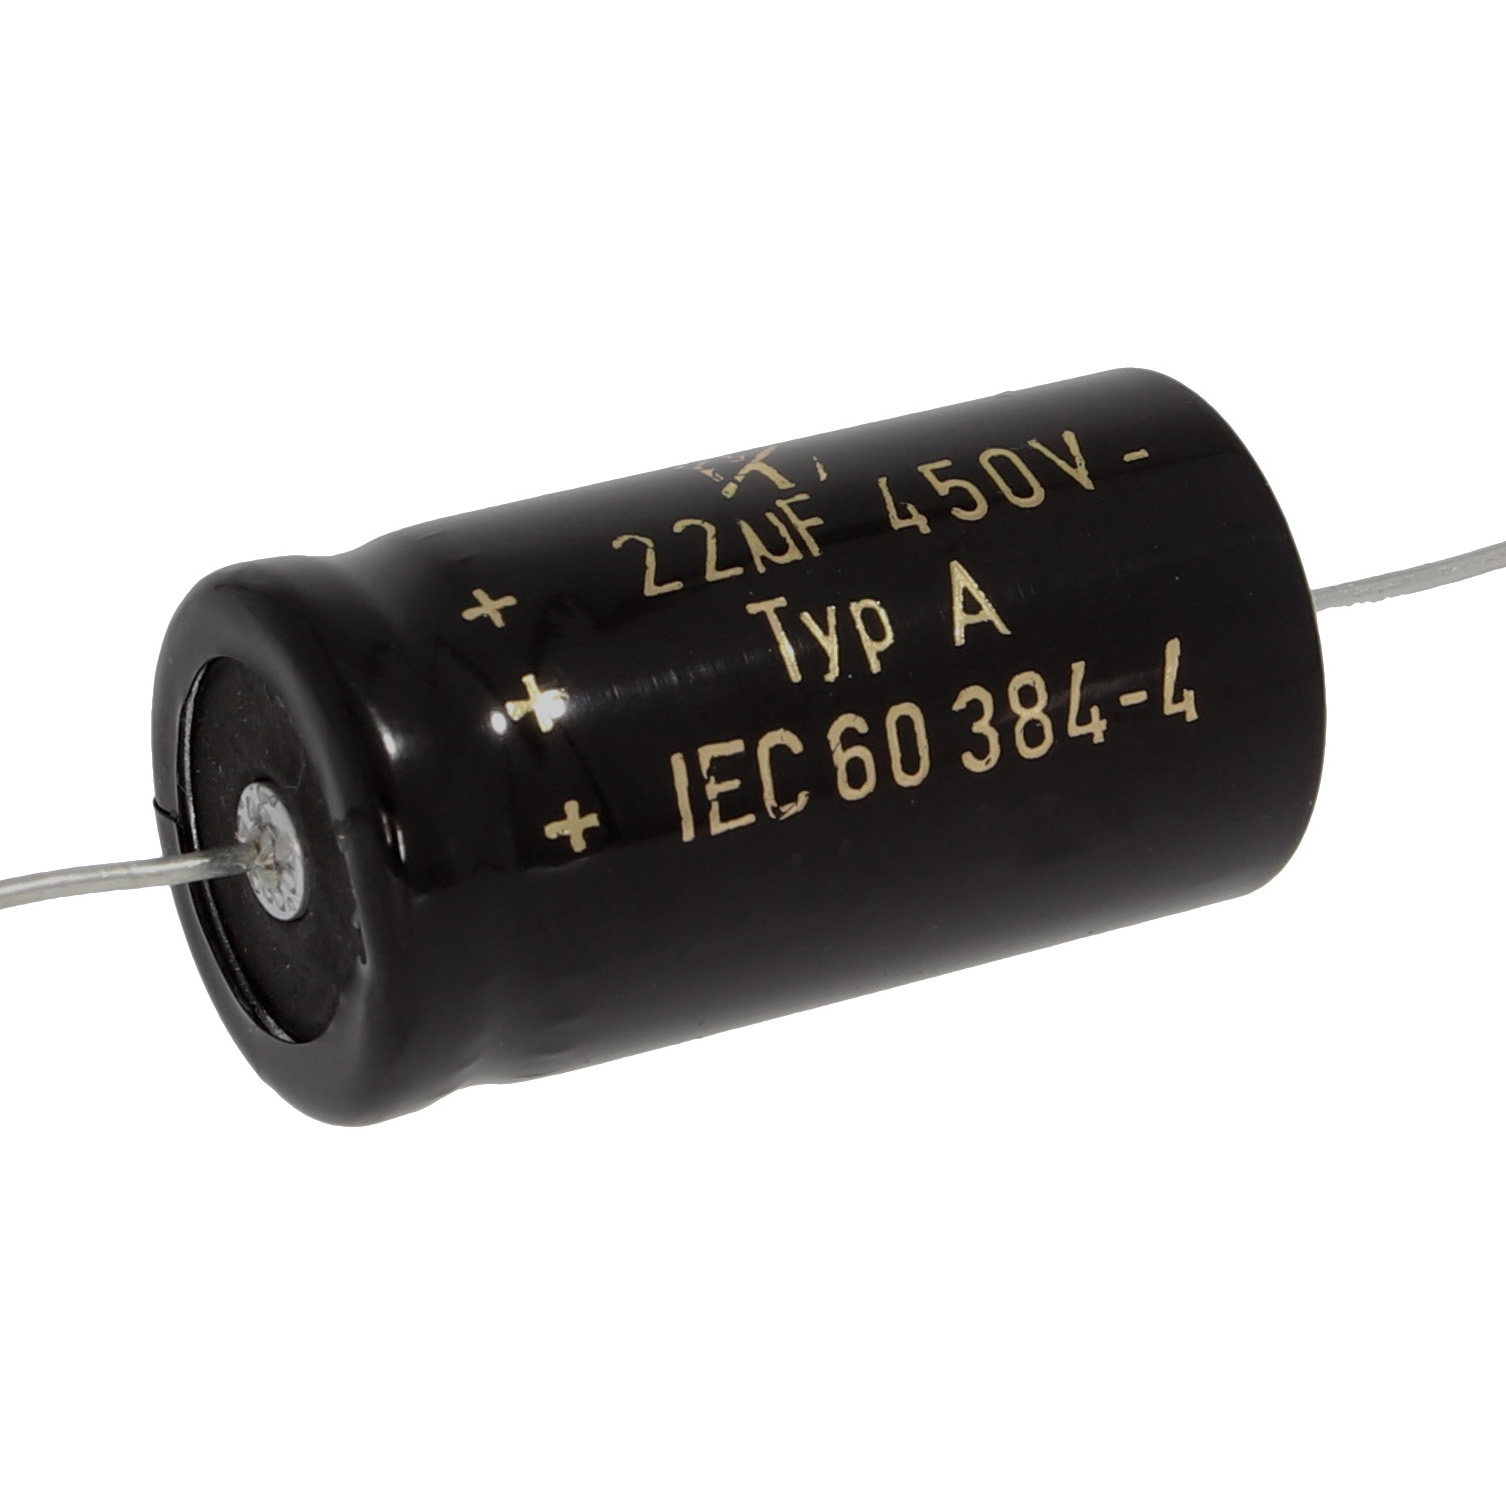 F+T axial capacitor